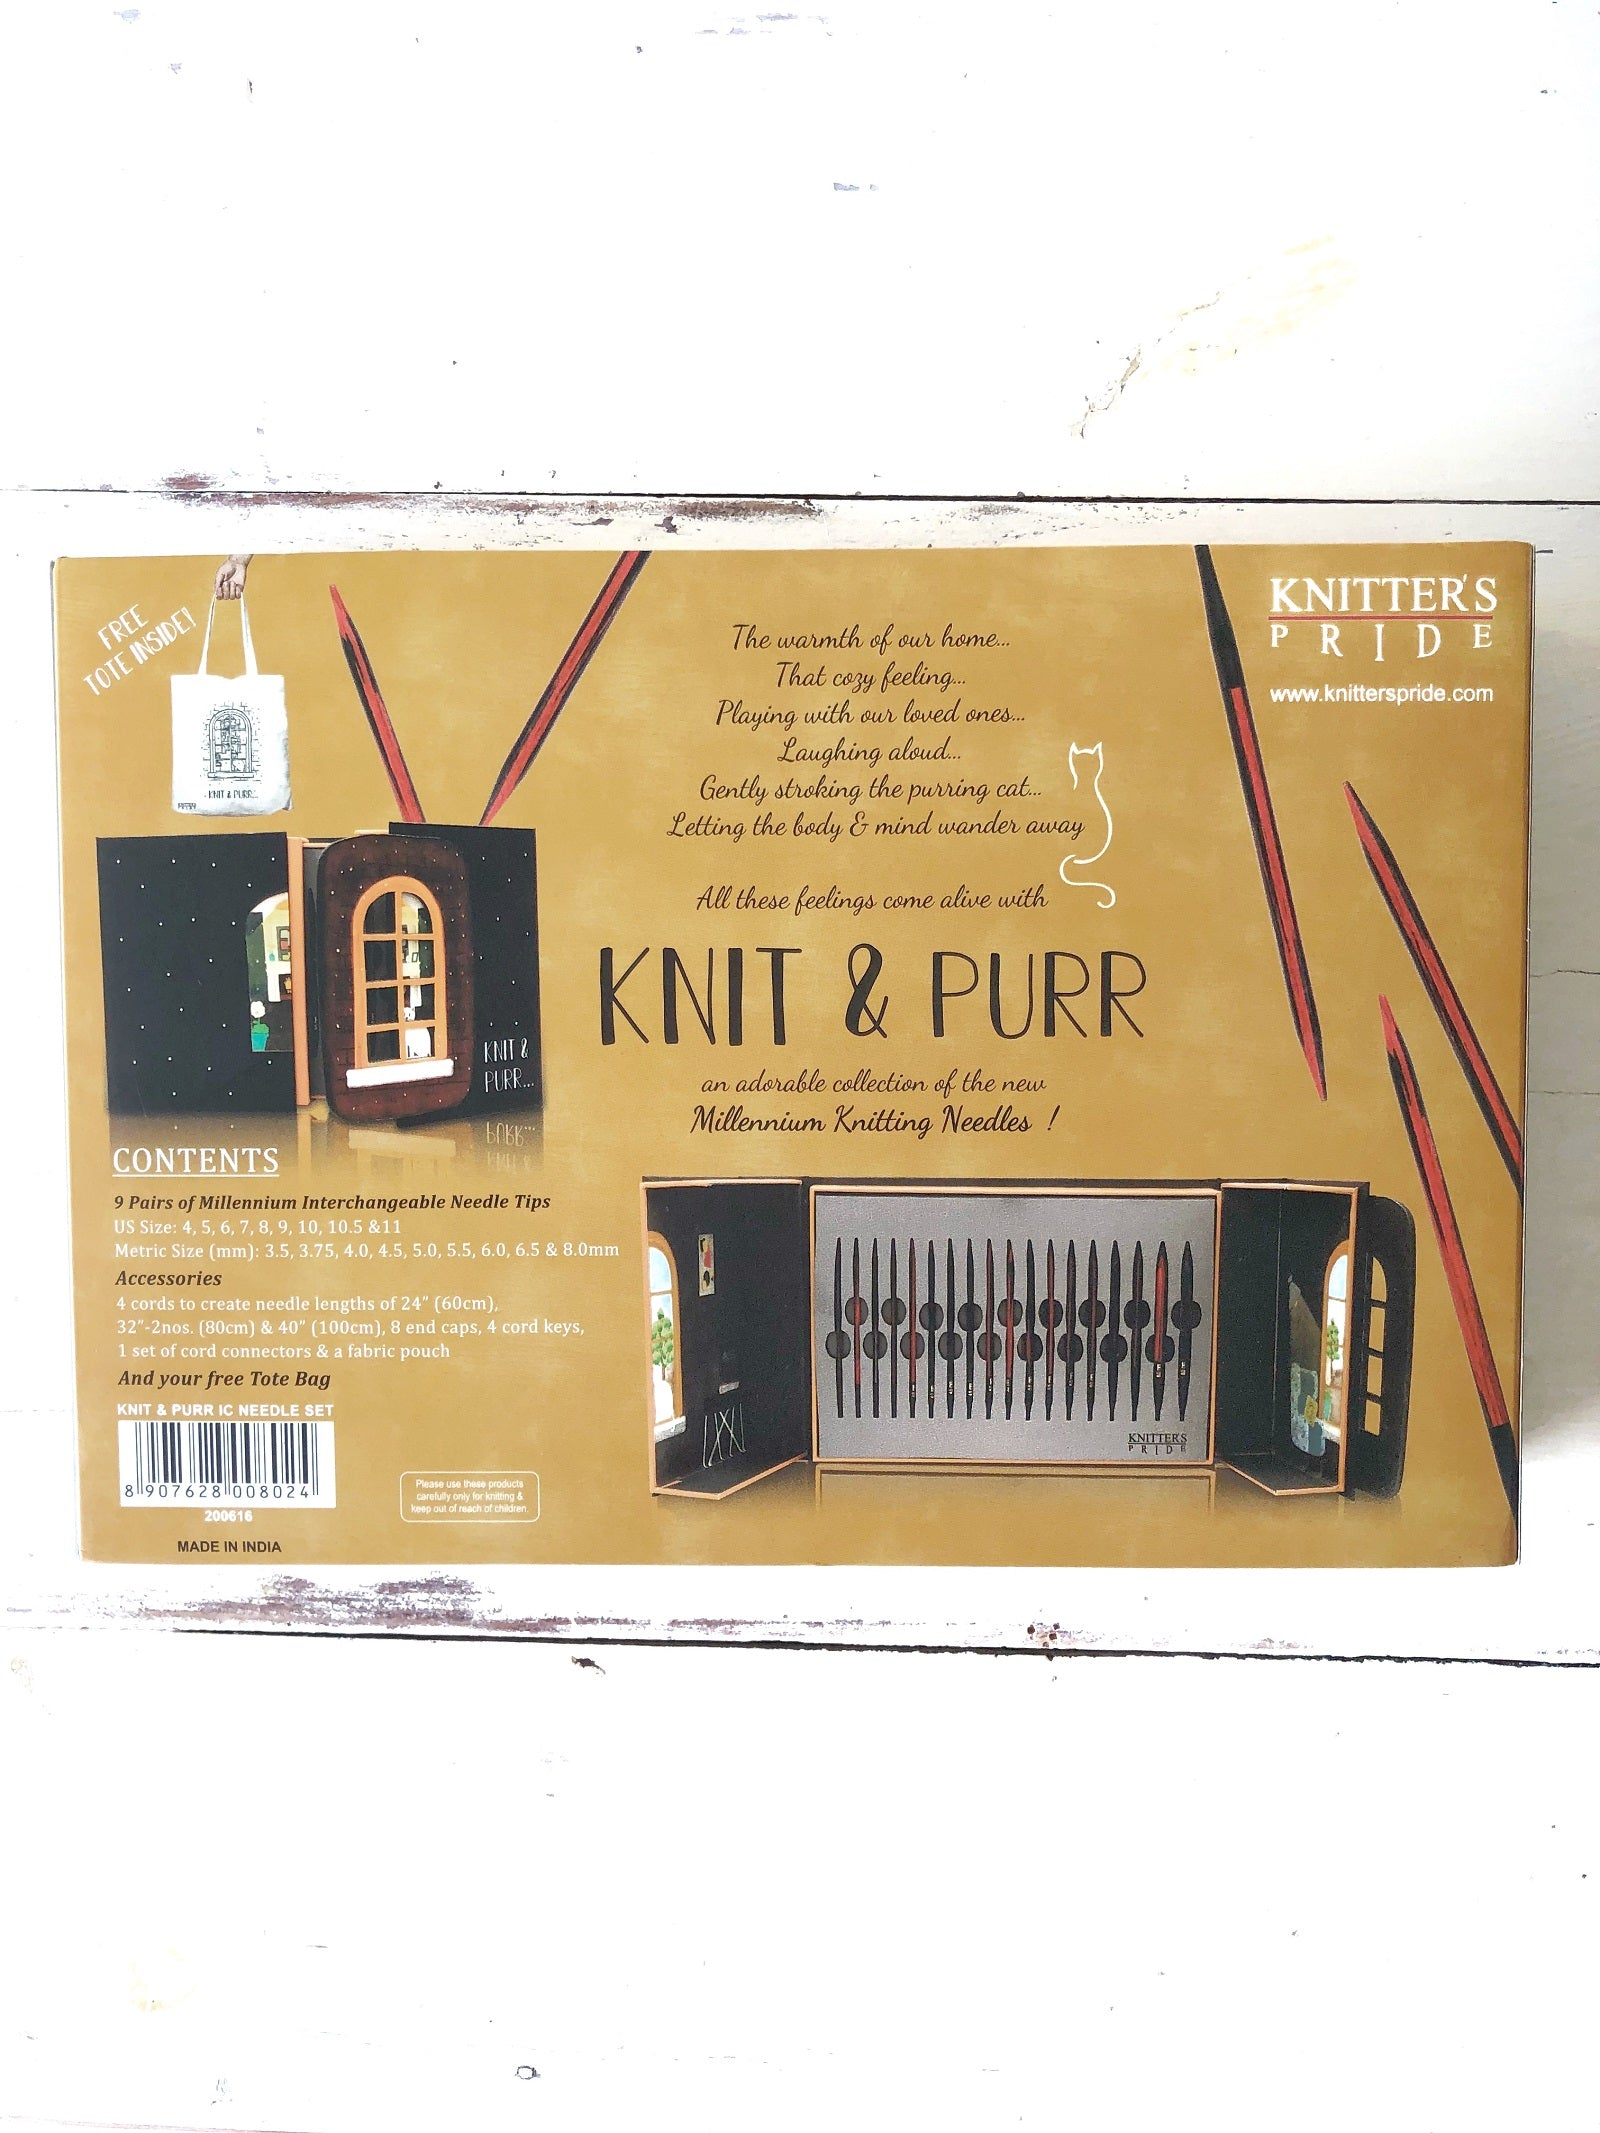 Knitters Pride Knit & Purr Interchangeable Needle Set